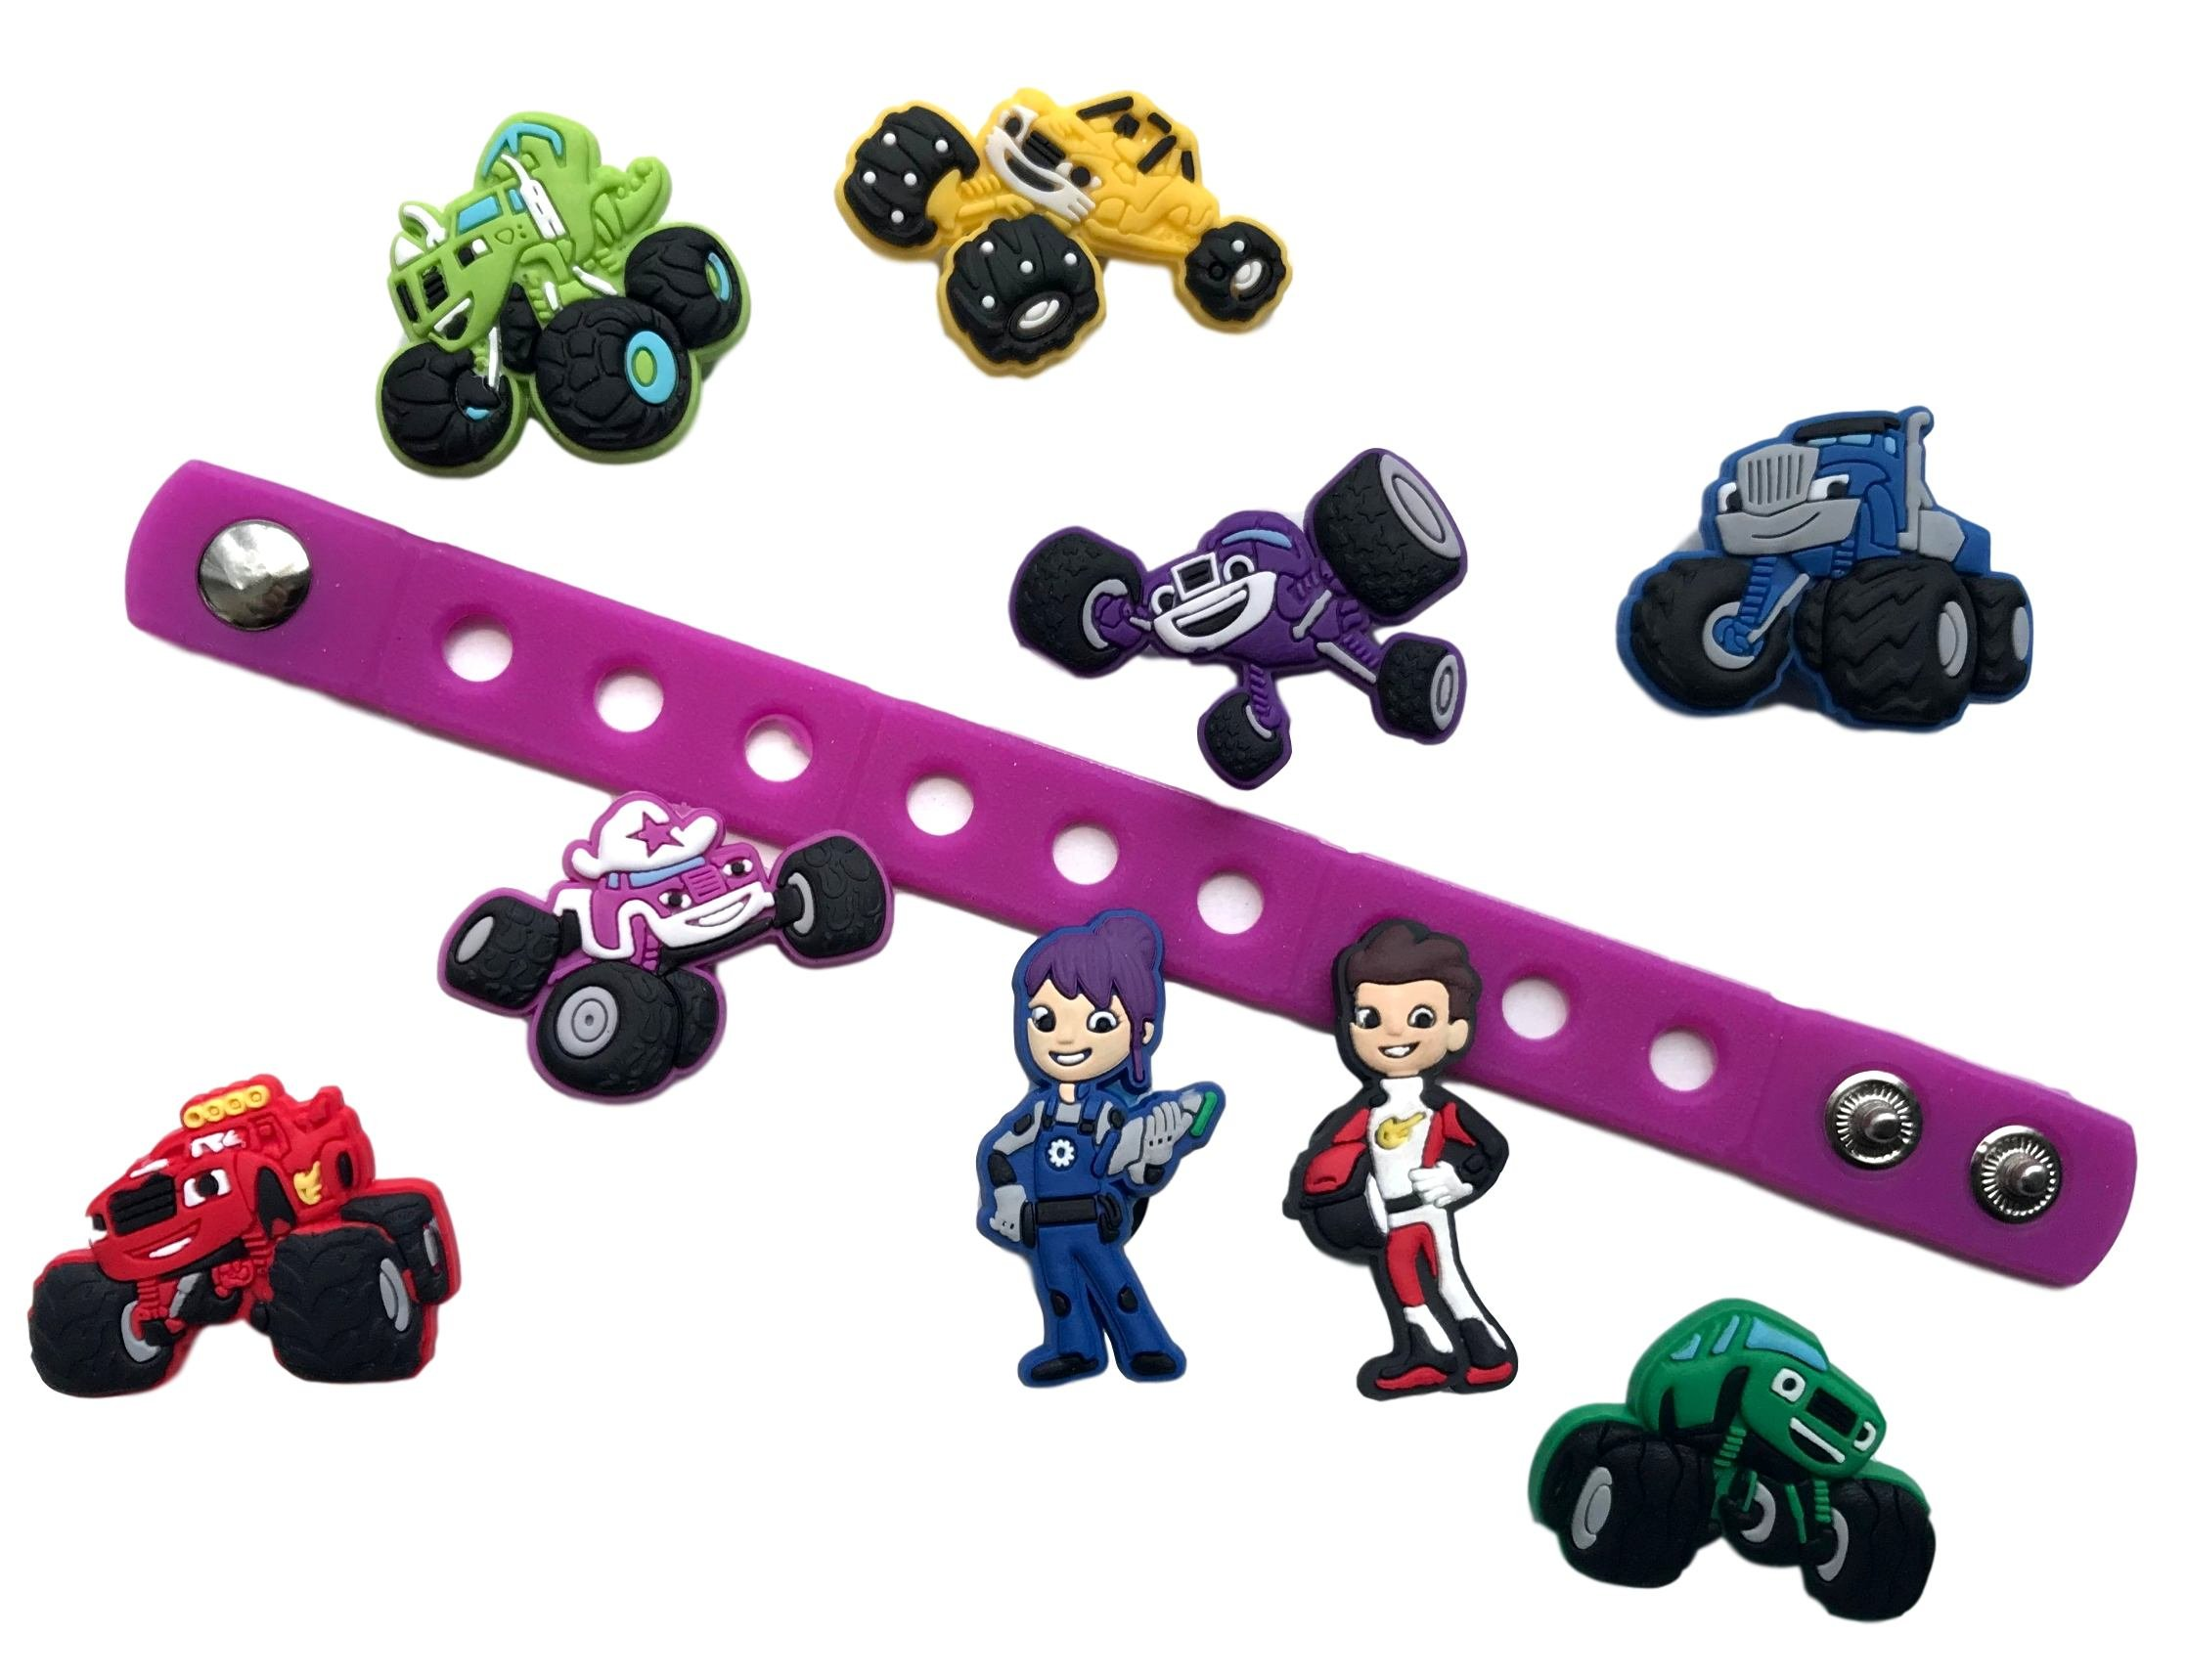 Cute Jibbitz Shoe Charms PVC Plug by Nenistore|Accessories for Crocs Shoes & Bracelet Wristband Party Gifts | Monster Truck Racing (9 pcs) & 01 Silicone Wristband 7 Inches